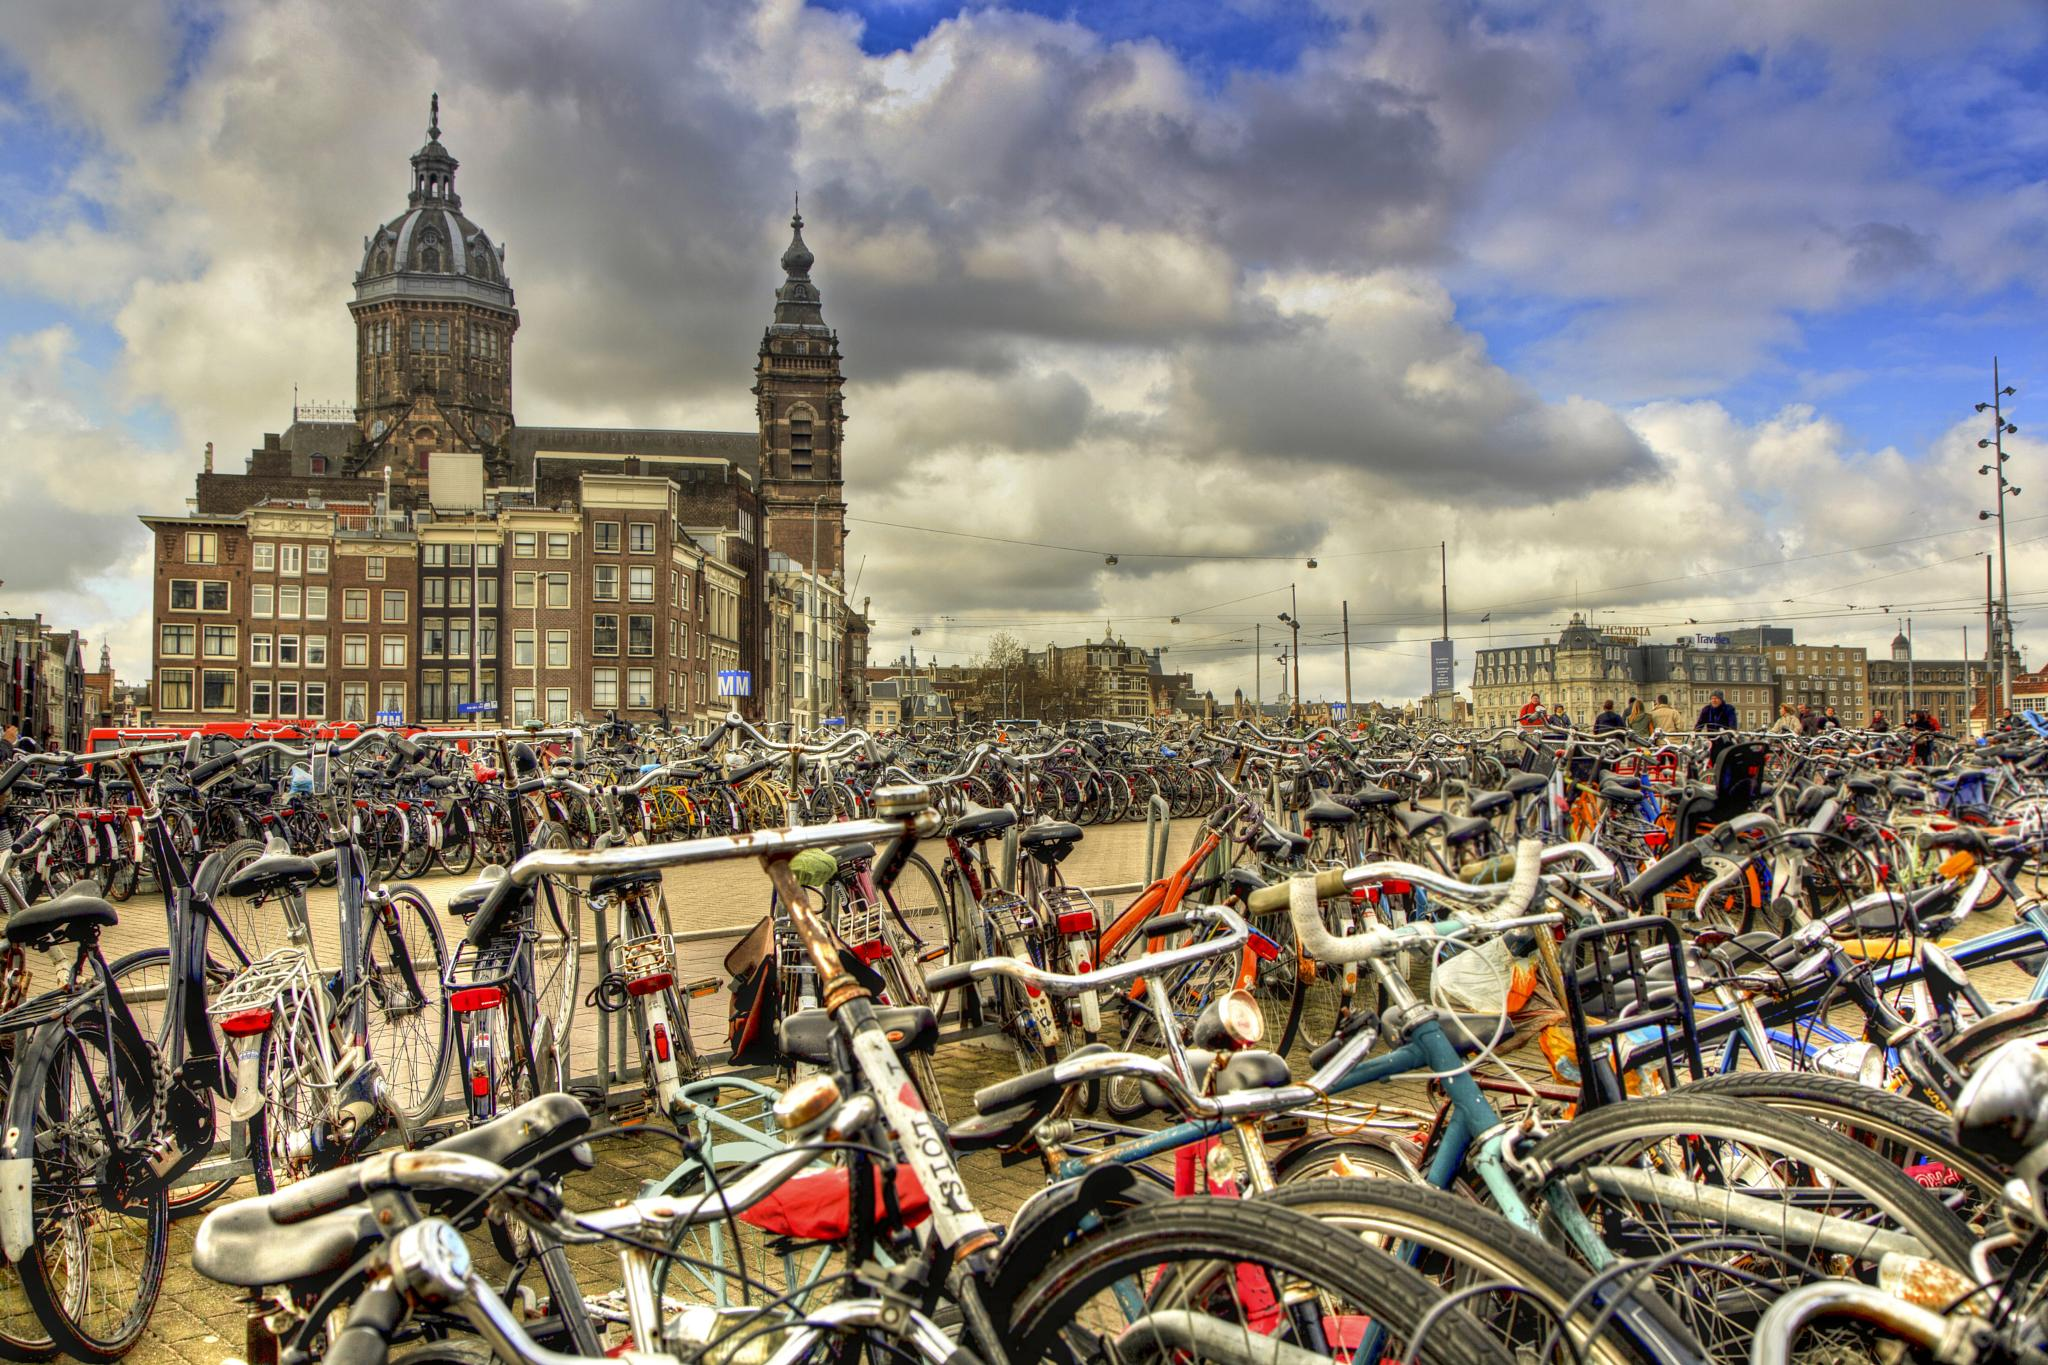 Bicycles in Amsterdam by markanthony